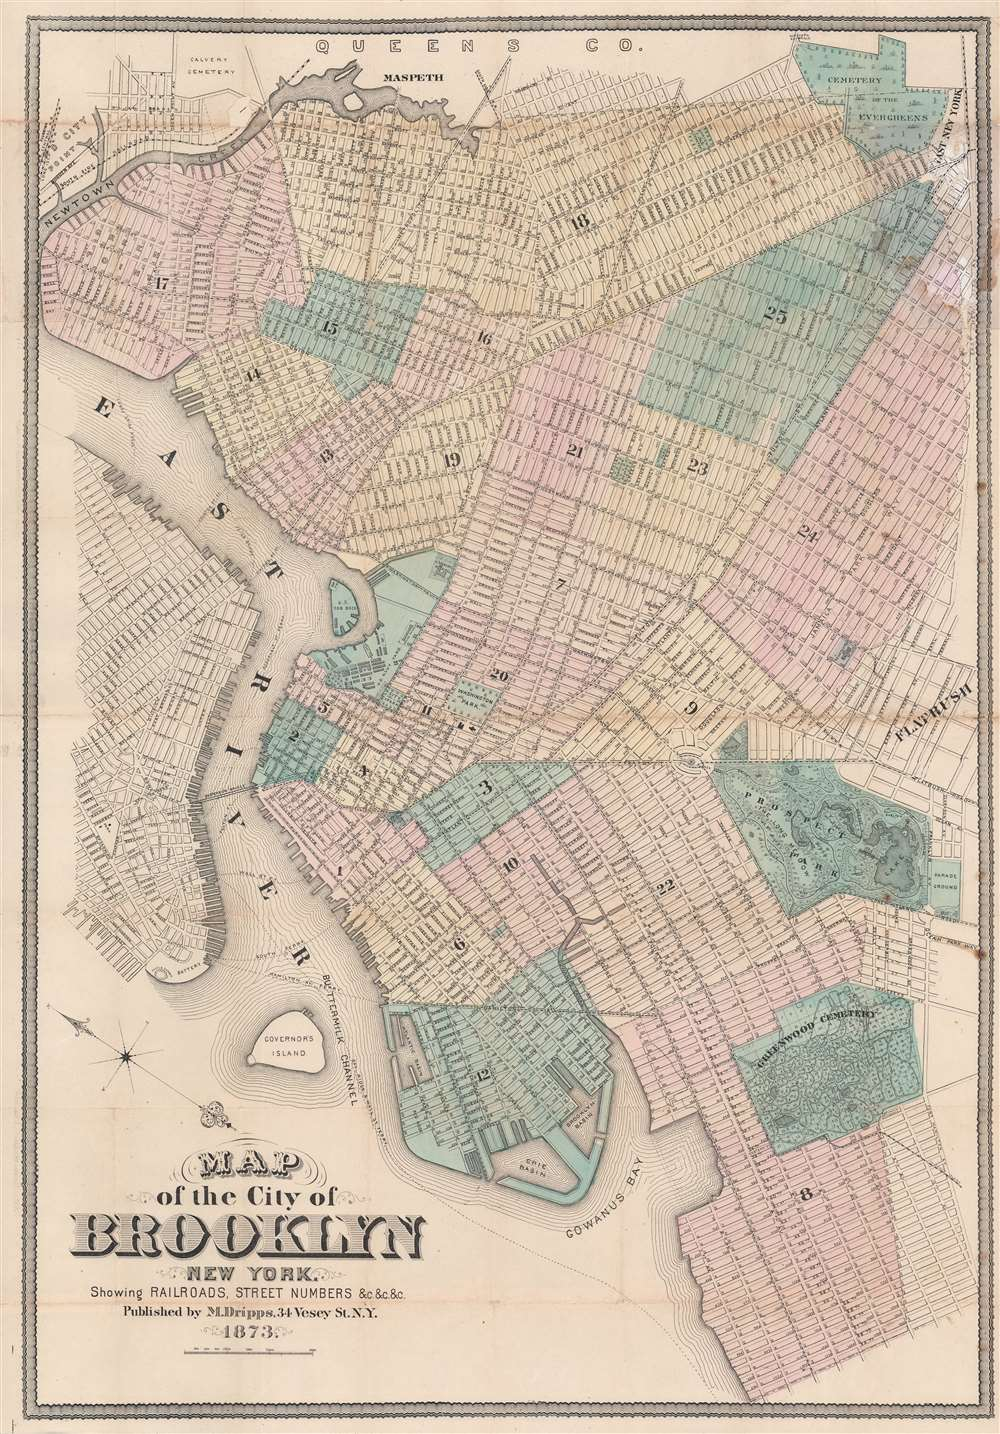 Map of the City of Brooklyn New York. - Main View